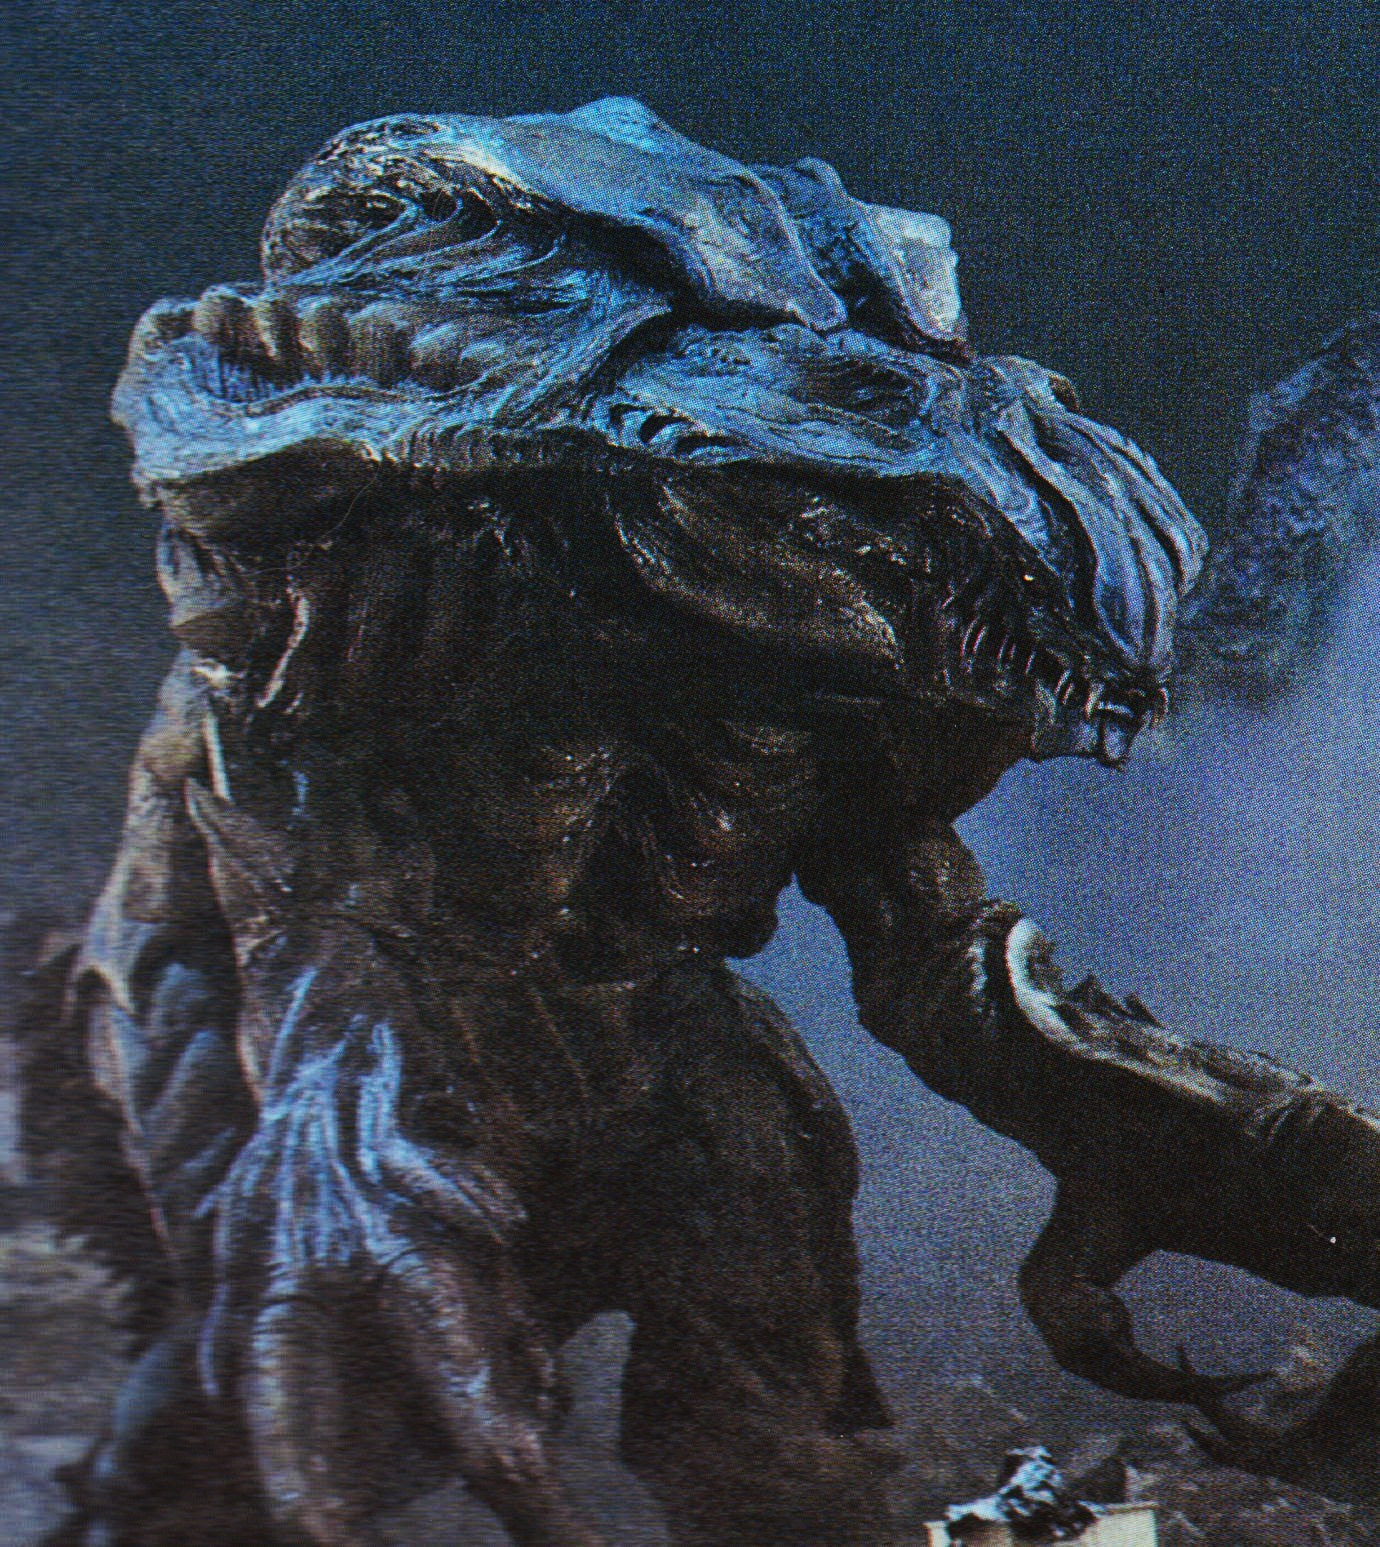 The Definitive Ranking Of Every Monster From The Godzilla